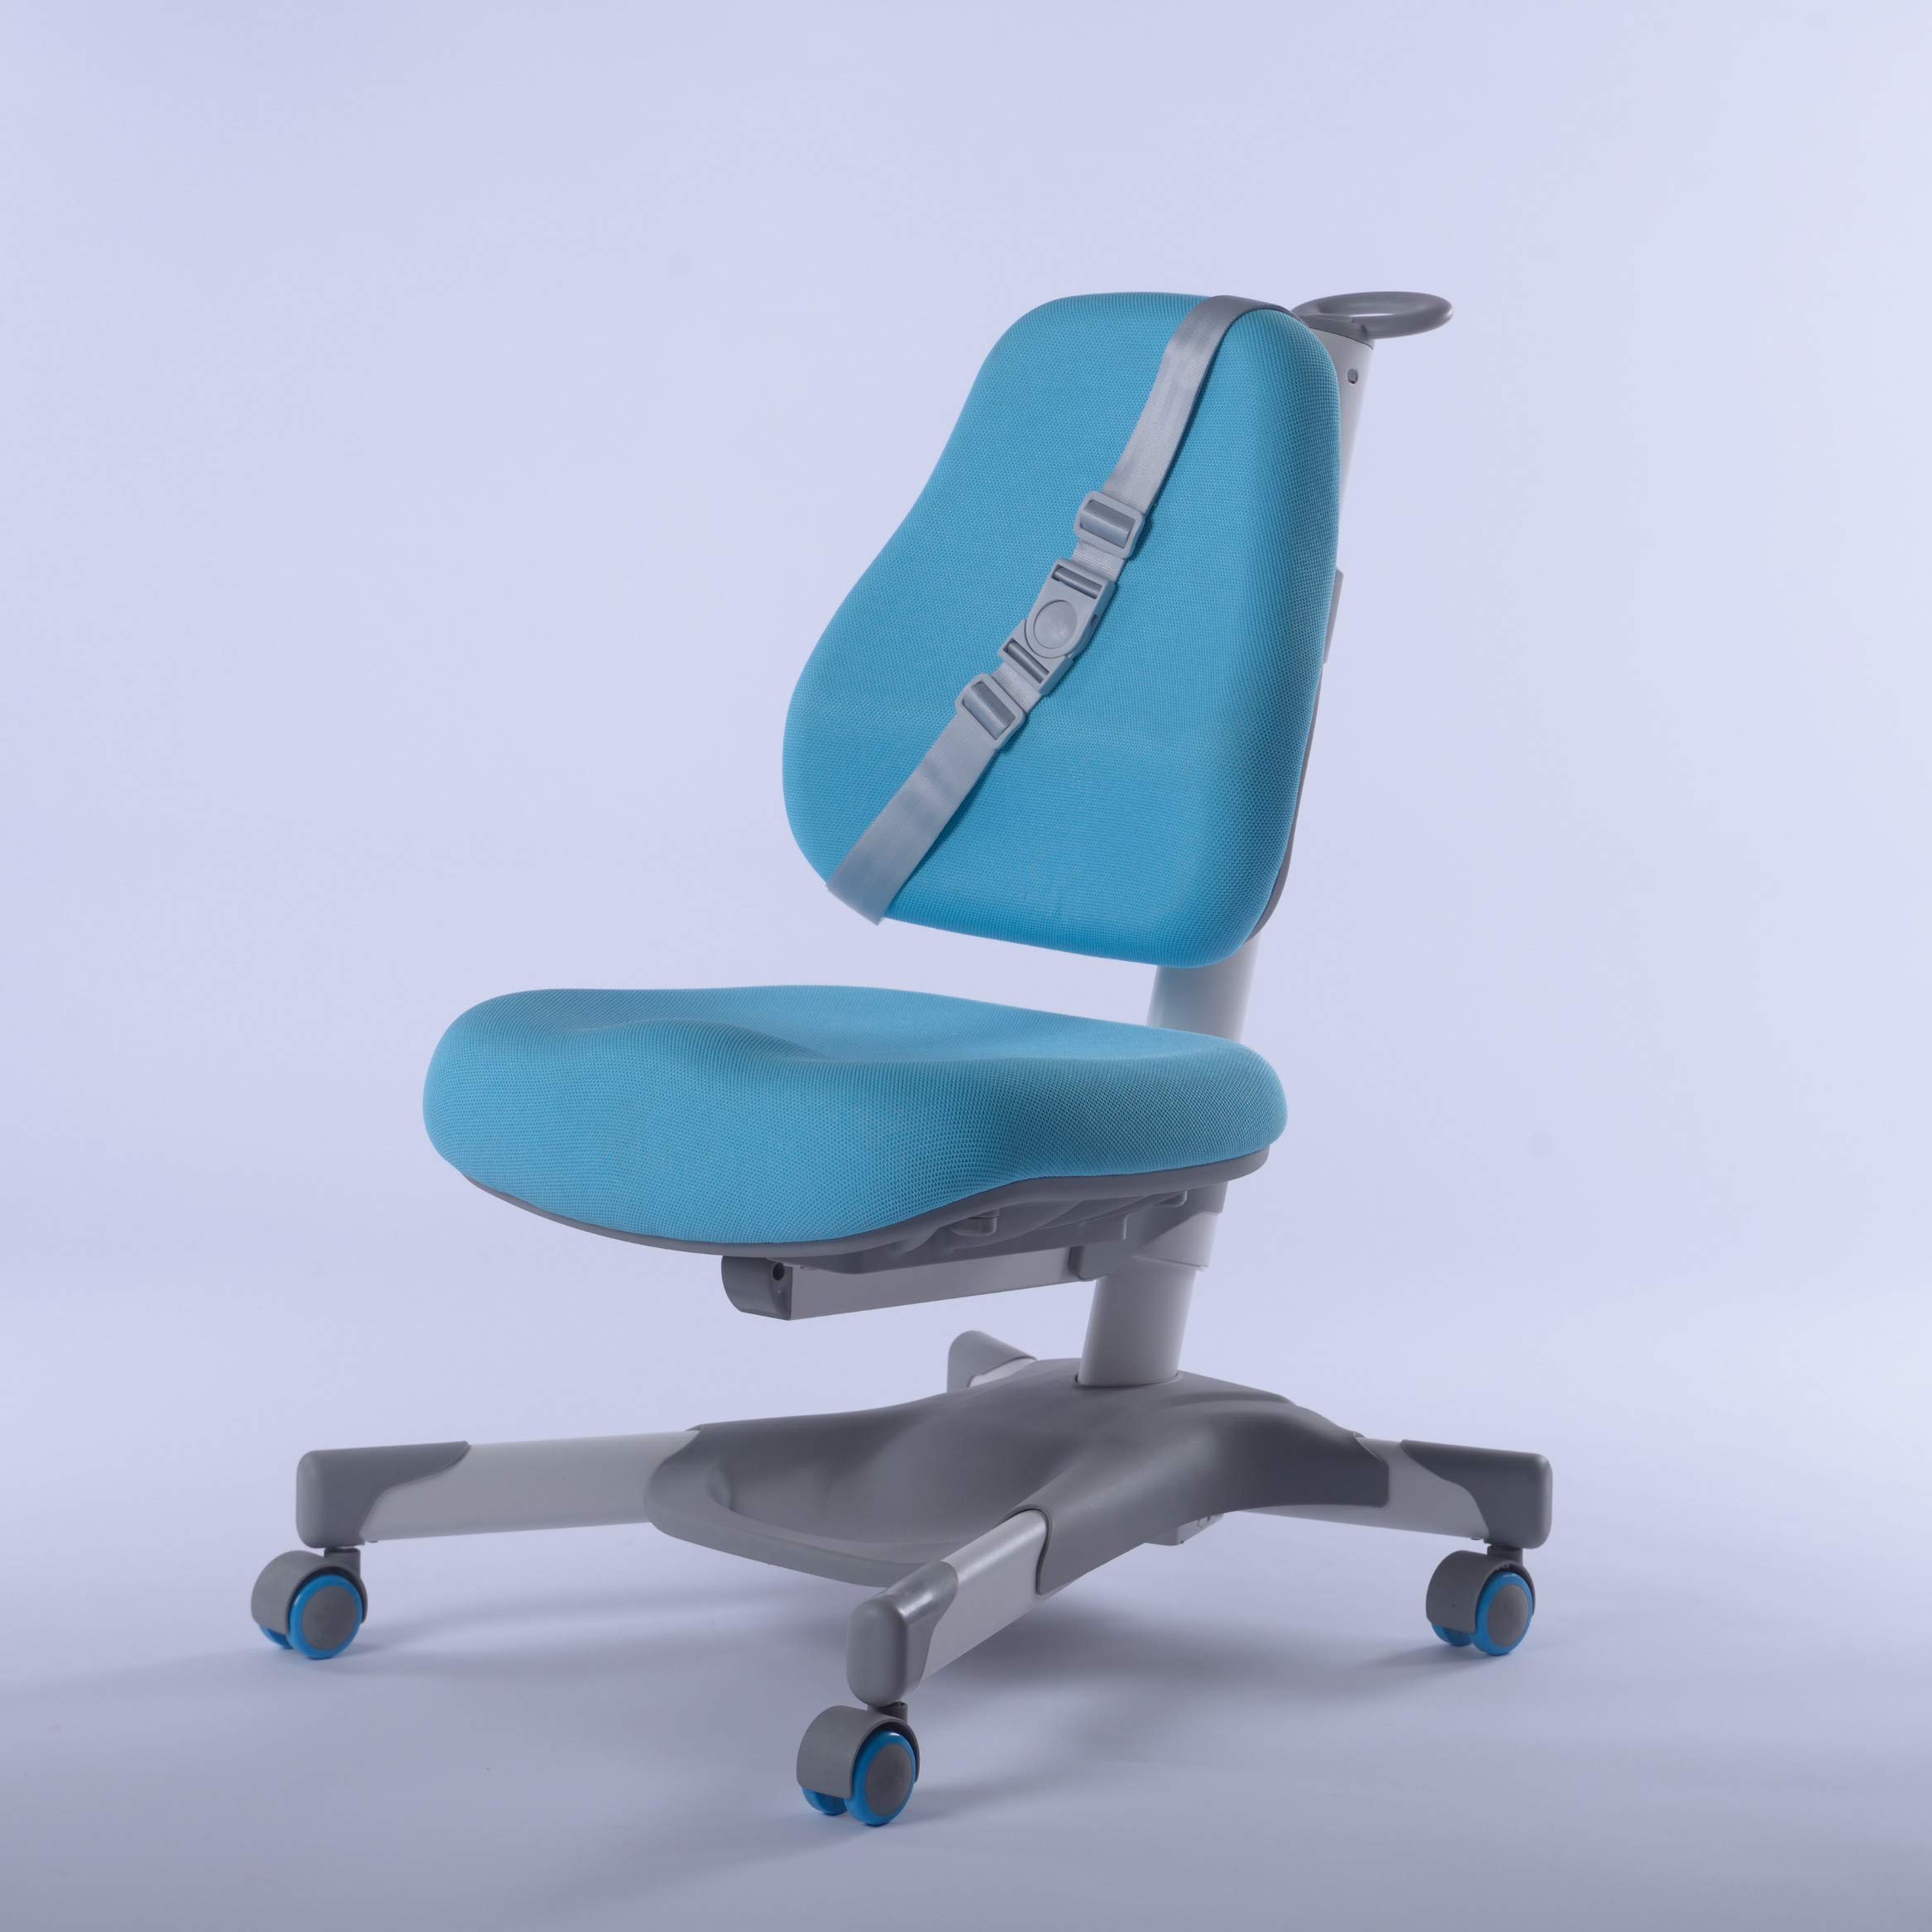 GMYD Height Adjustable Study Ergonomic Chair with Footrest (Blue)